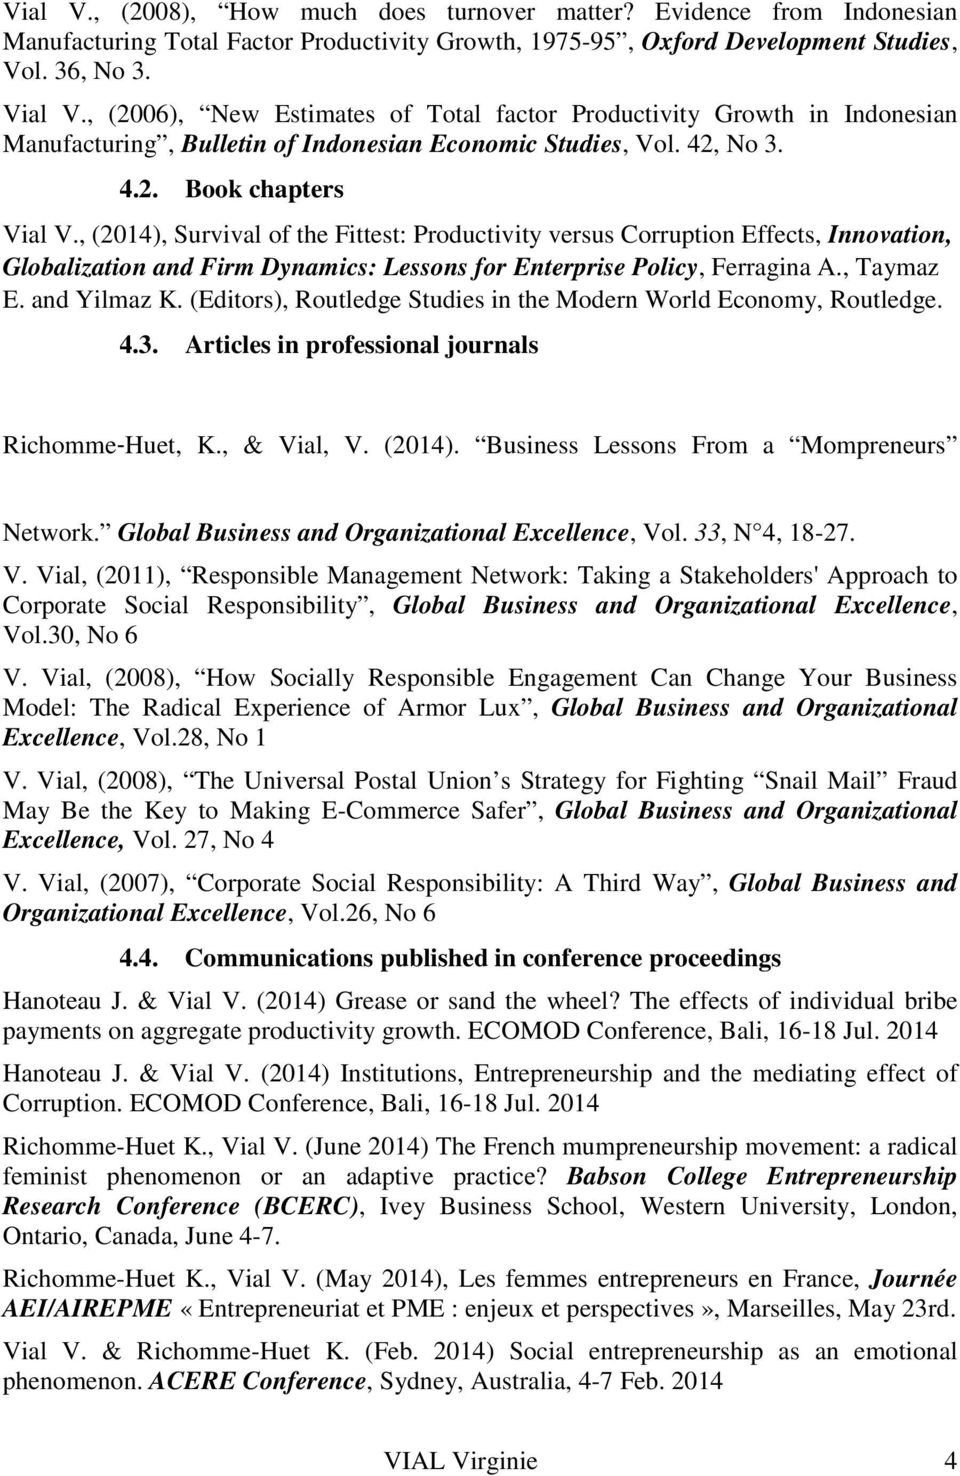 , (2014), Survival of the Fittest: Productivity versus Corruption Effects, Innovation, Globalization and Firm Dynamics: Lessons for Enterprise Policy, Ferragina A., Taymaz E. and Yilmaz K.